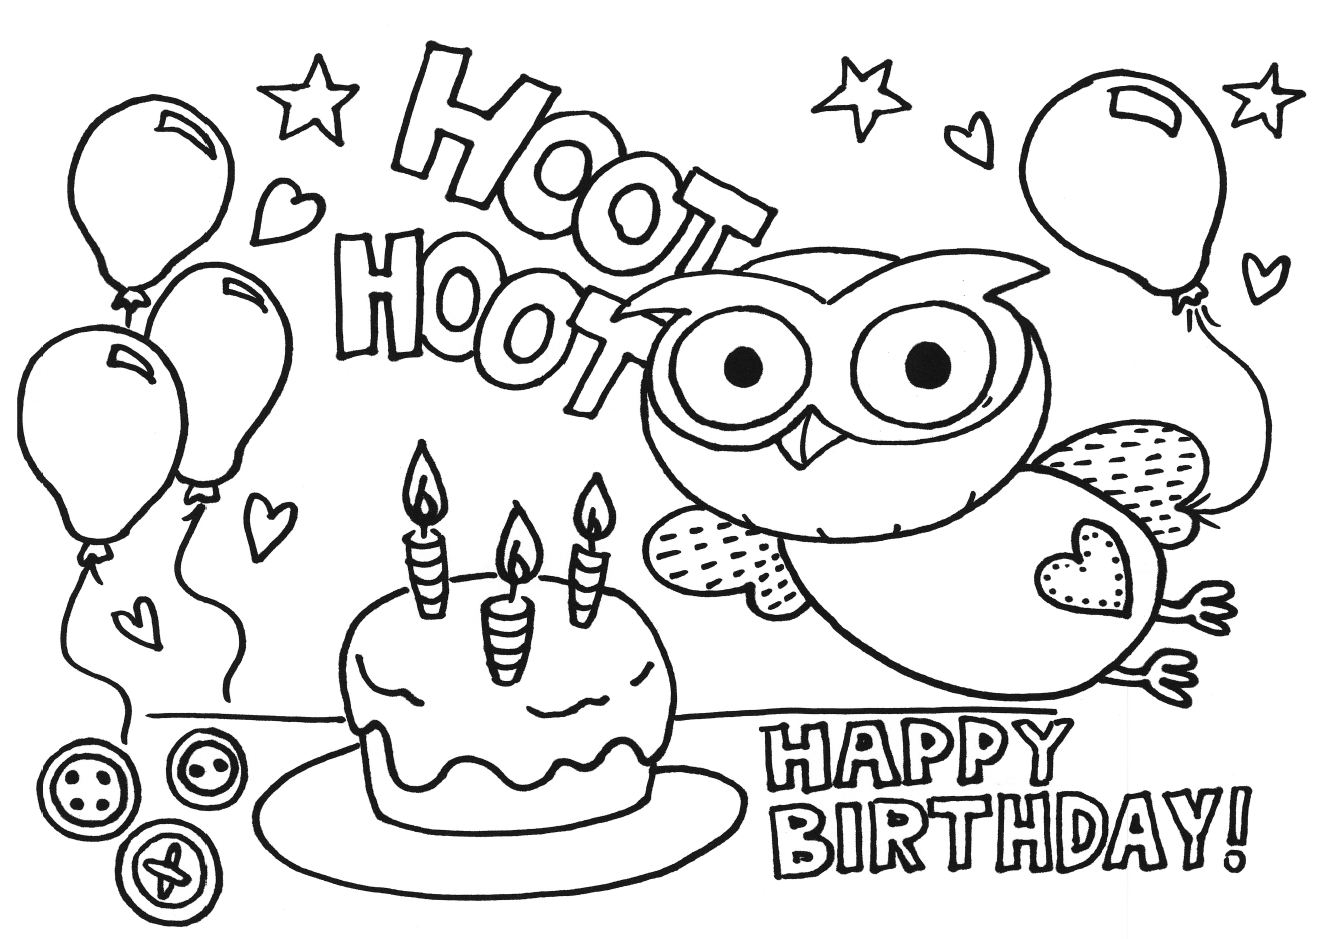 disney happy birthday coloring pages ; disney-happy-birthday-coloring-pages-download-11-o-happy-birthday-happy-birthday-mickey-mouse-birthday-coloring-pages